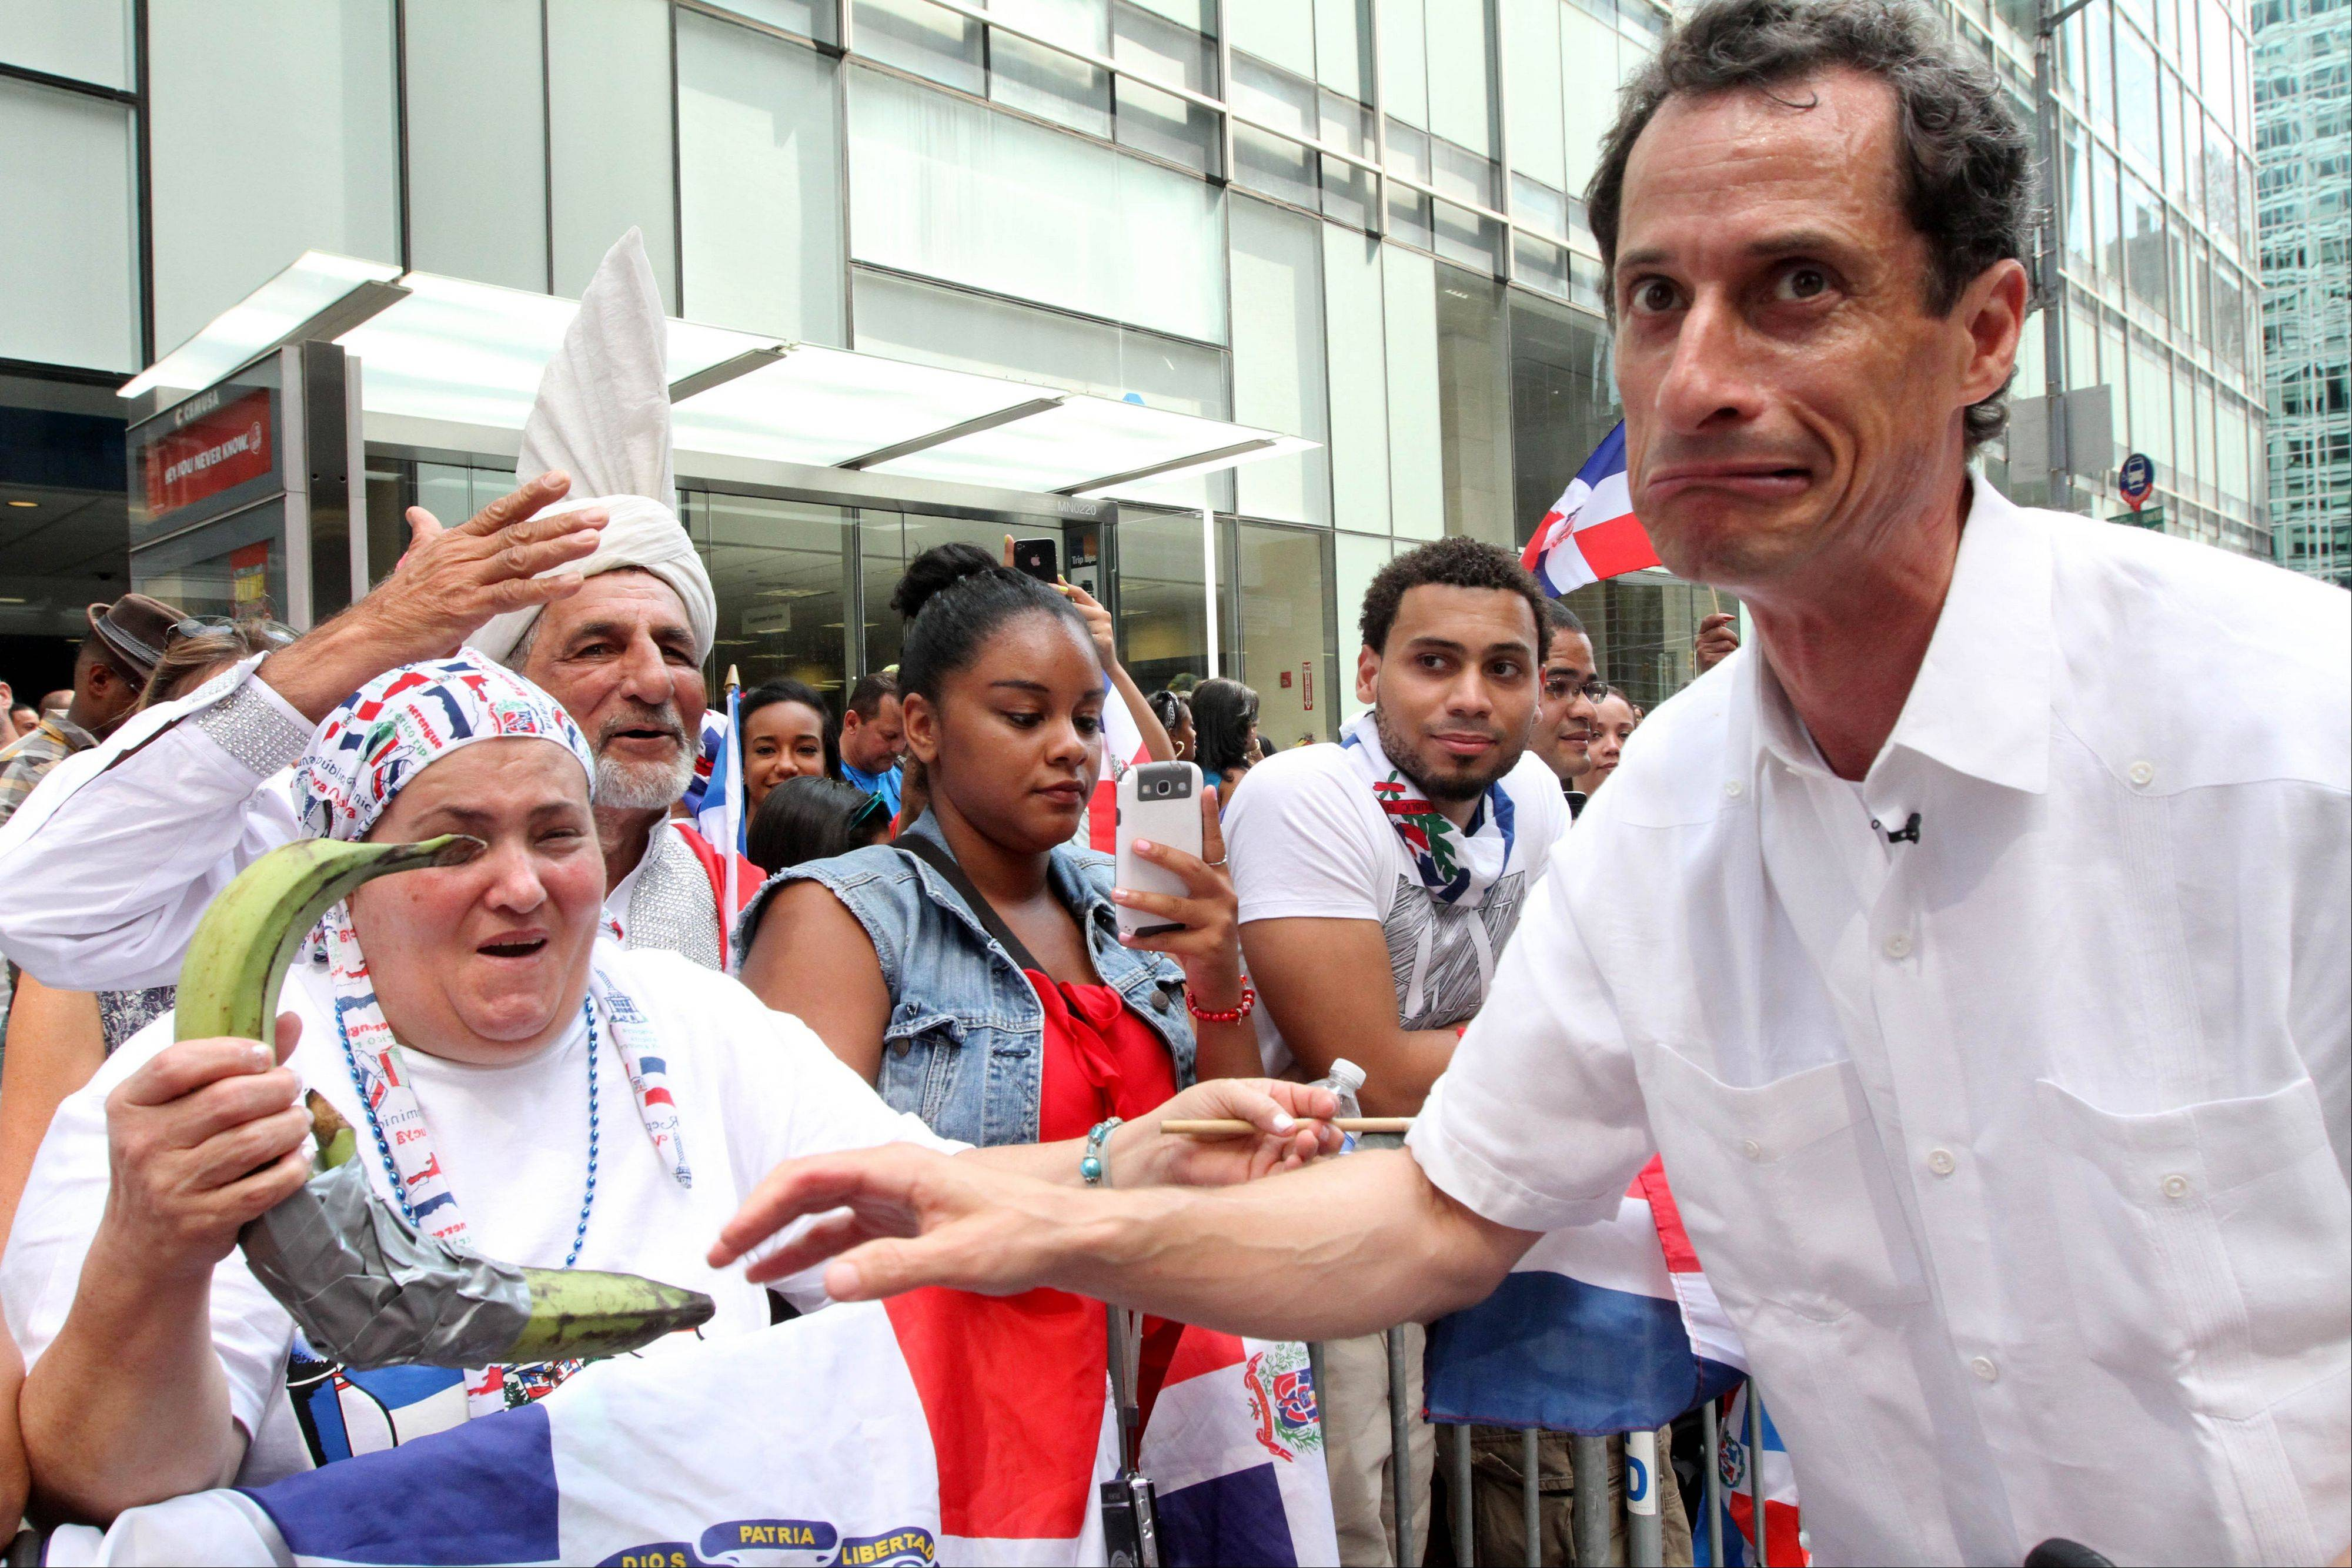 Anthony Weiner, running in the New York Mayors race, right, reacts after sharing a moment with a spectator and her plantains, left, as he takes part in the Dominican Day Parade on New York�s Avenue of the Americas Sunday.